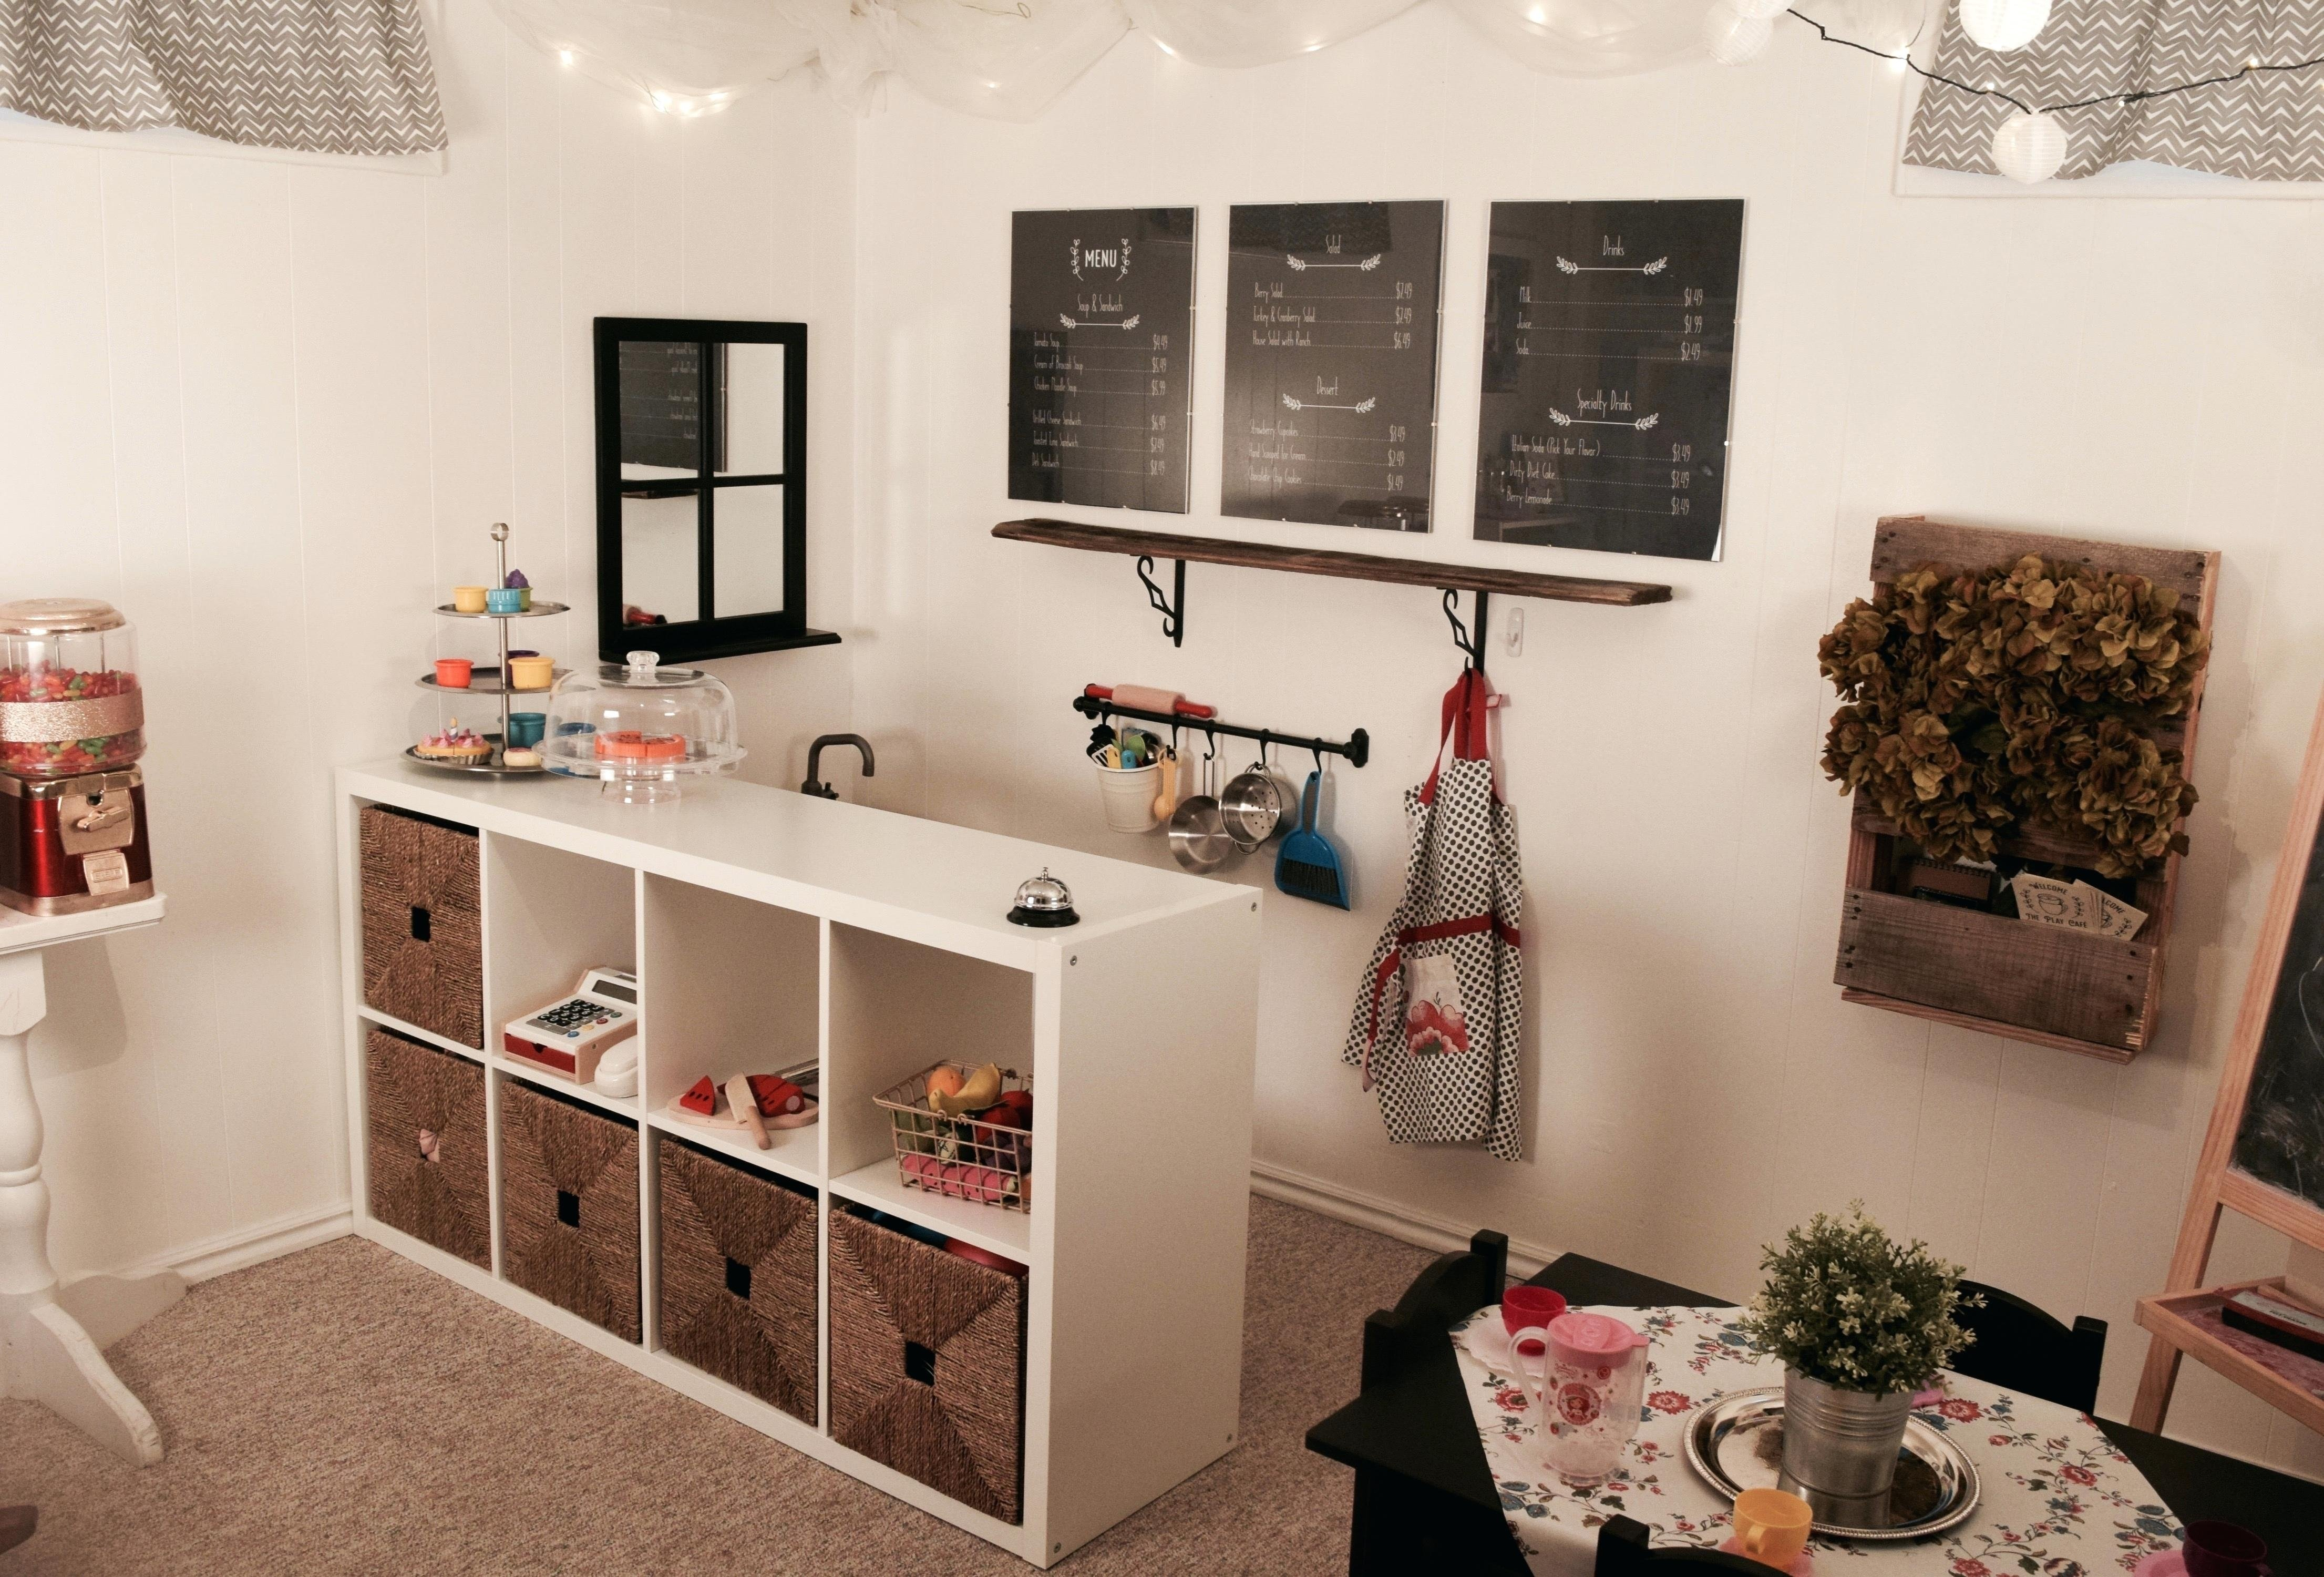 10 Nice Playroom Ideas For Small Spaces decoration kids playroom ideas for small spaces 2020